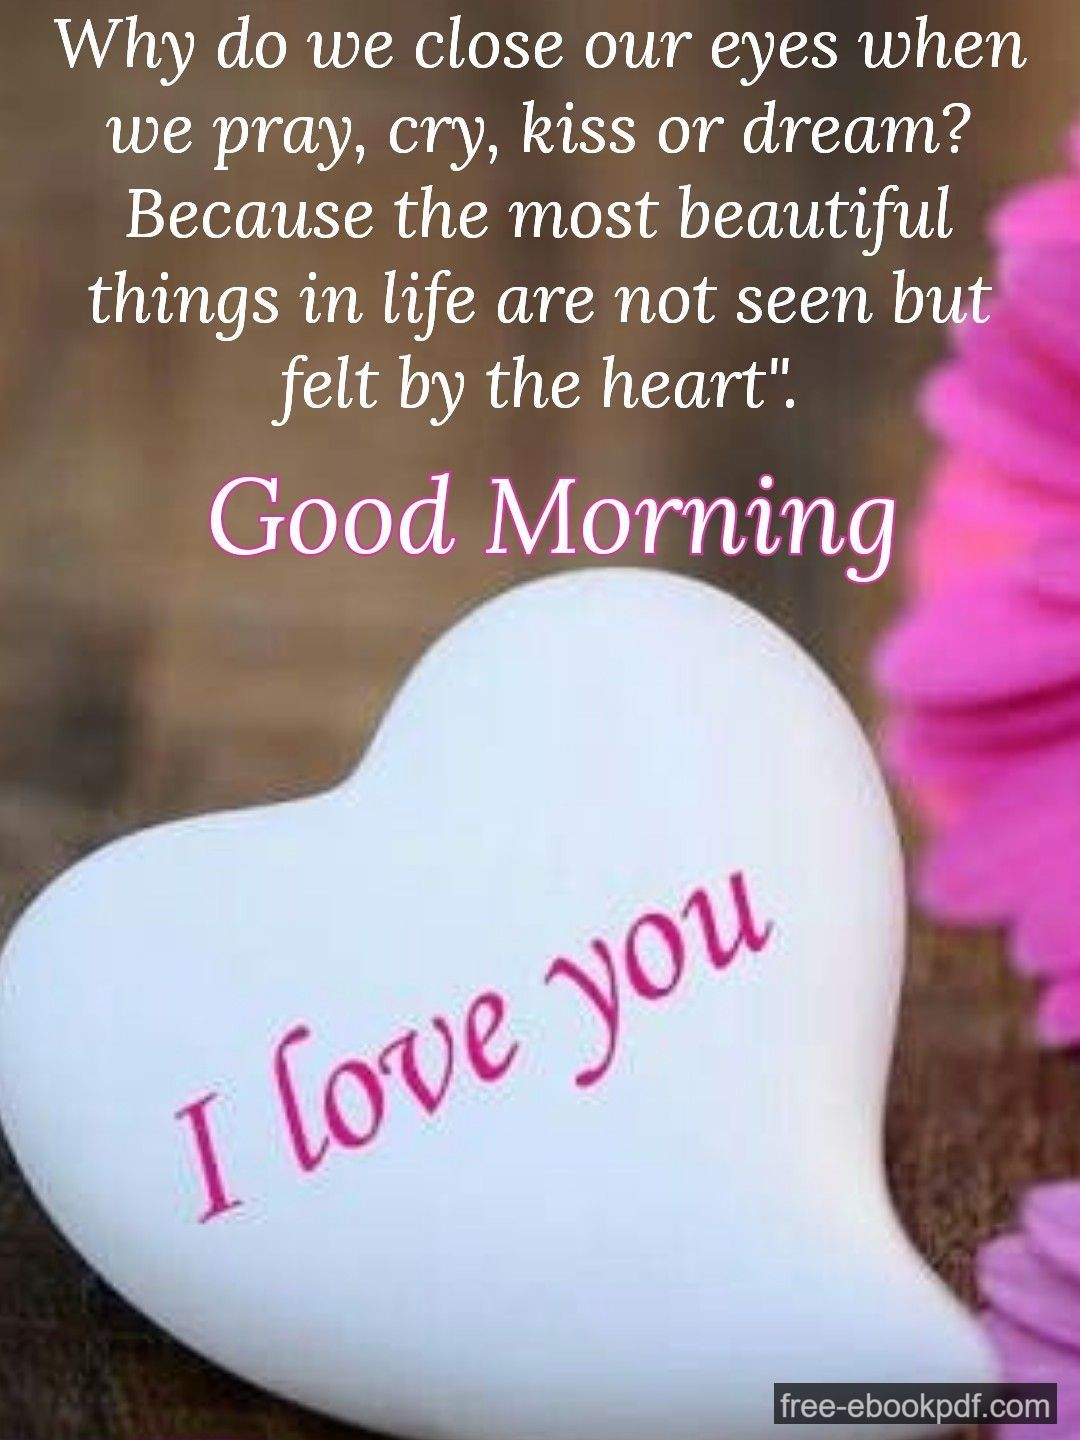 Funny Good Morning Messages Morning Love Quotes Good Morning Love Messages Good Morning Love